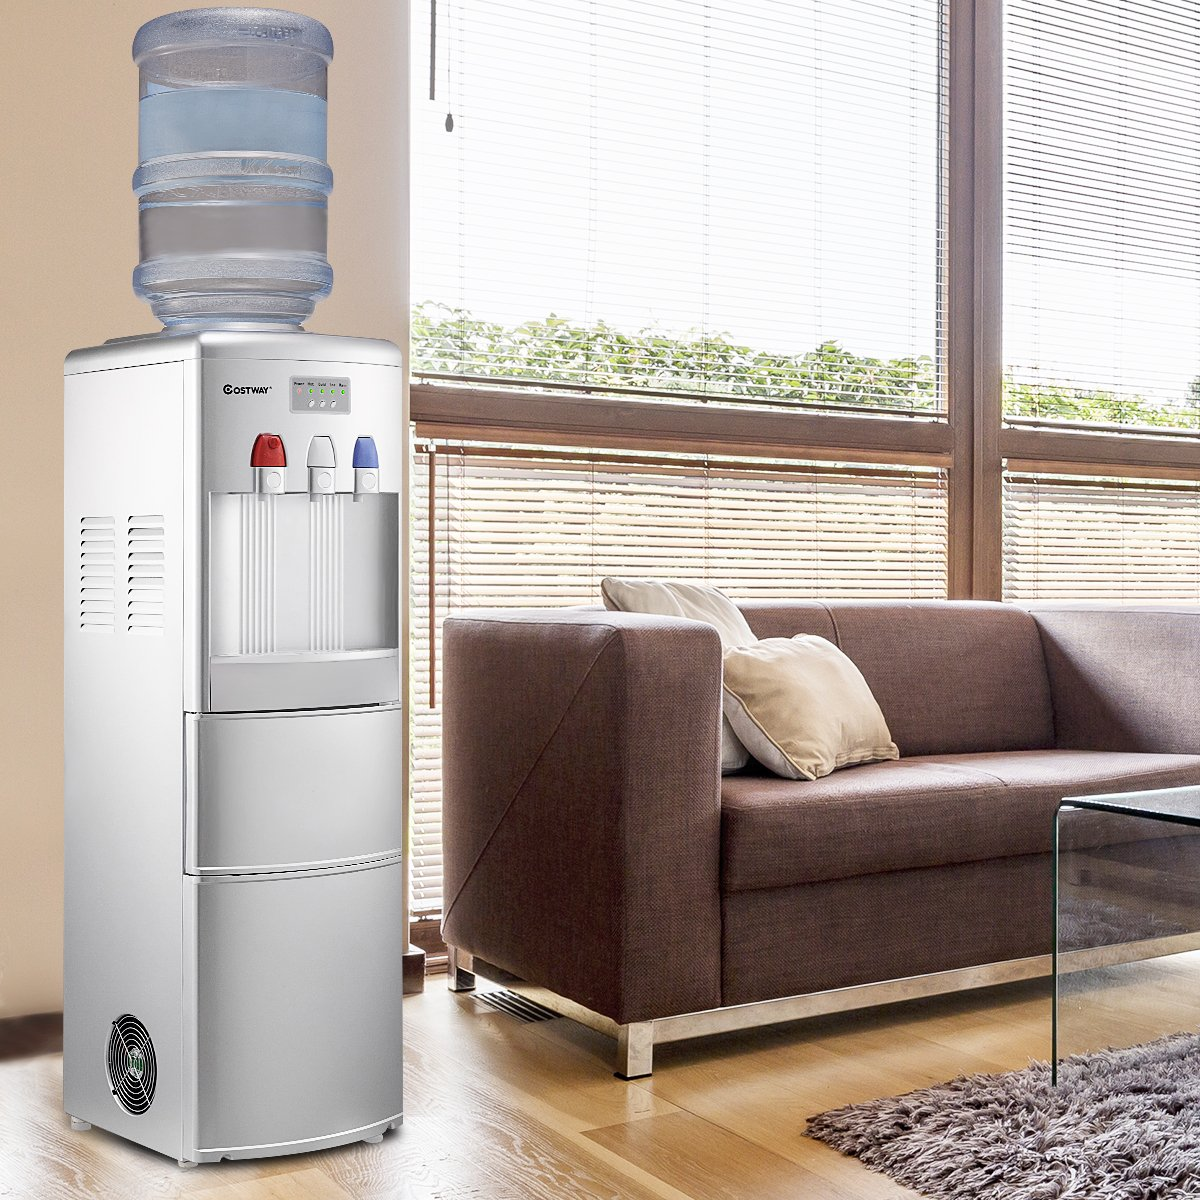 Costway 2-in-1 Water Cooler Dispenser with Built-in Ice Maker Freestanding Hot Cold Top Loading Water Dispenser 27LB/24H Ice Machine with Child Safety Lock, Silver by COSTWAY (Image #7)